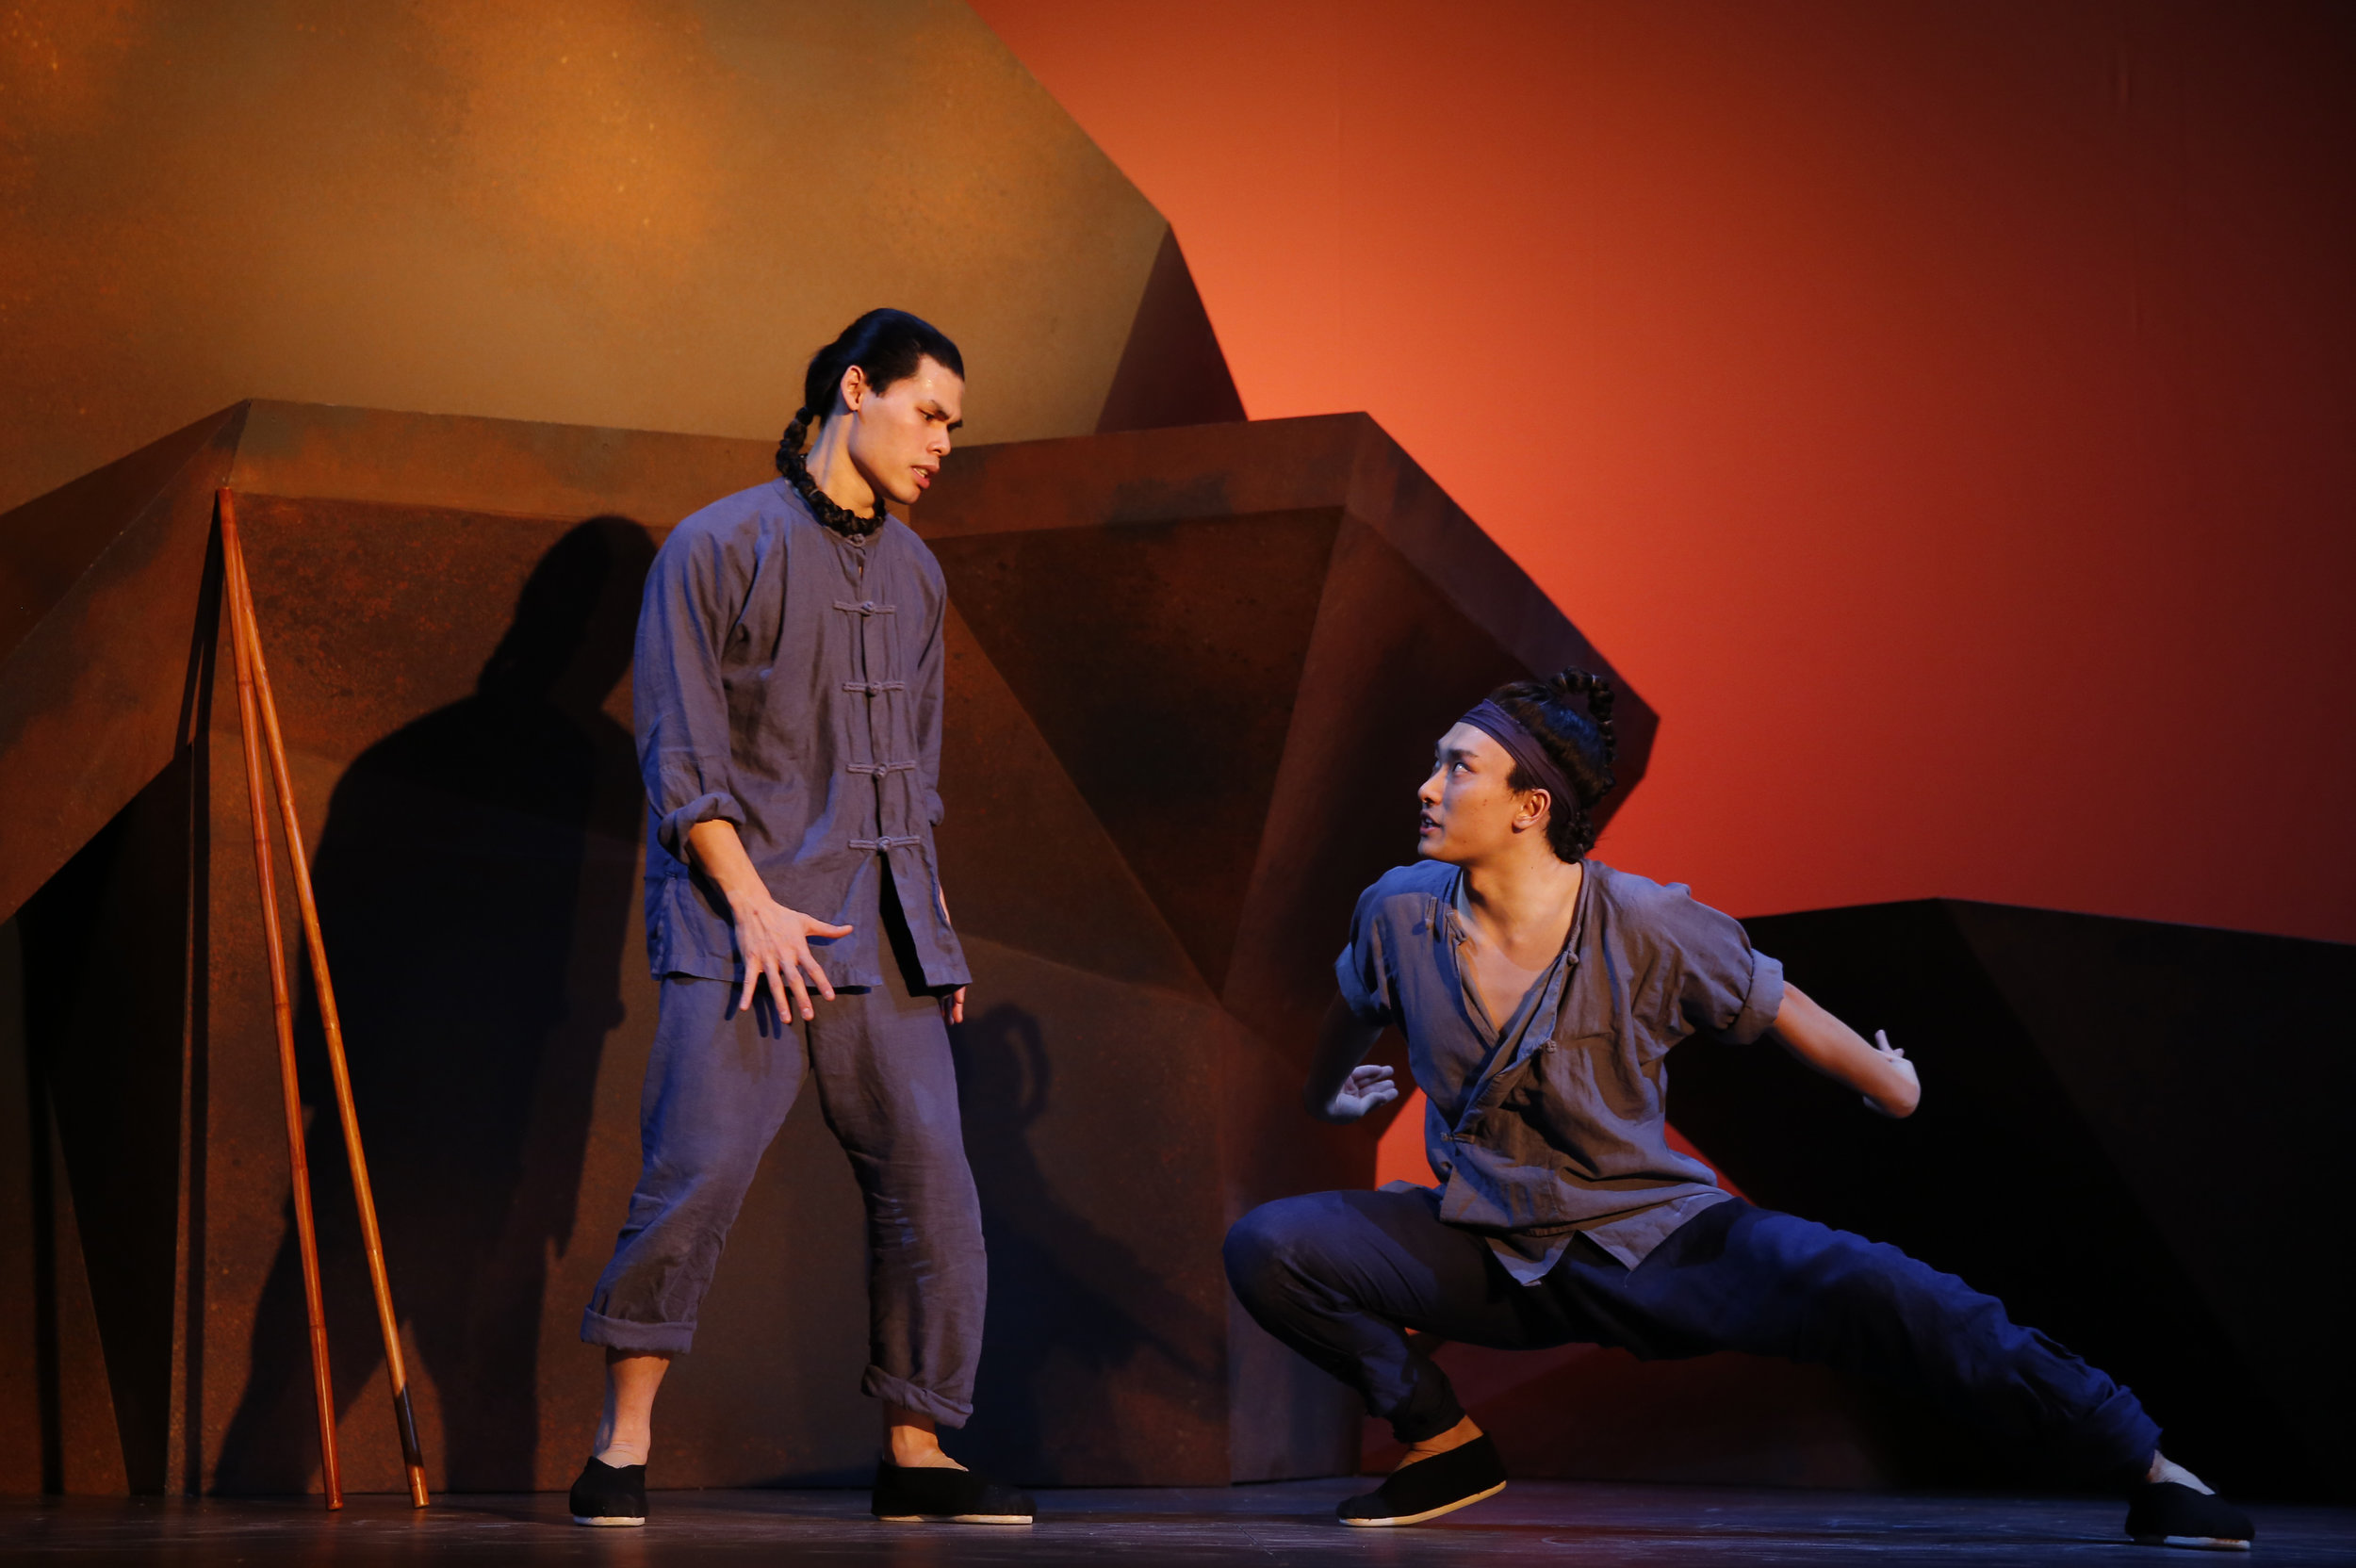 William Yuekun Wu 和 Ruy Iskandar 在演出中。 Joan Marcus摄于署名剧院,2013年。